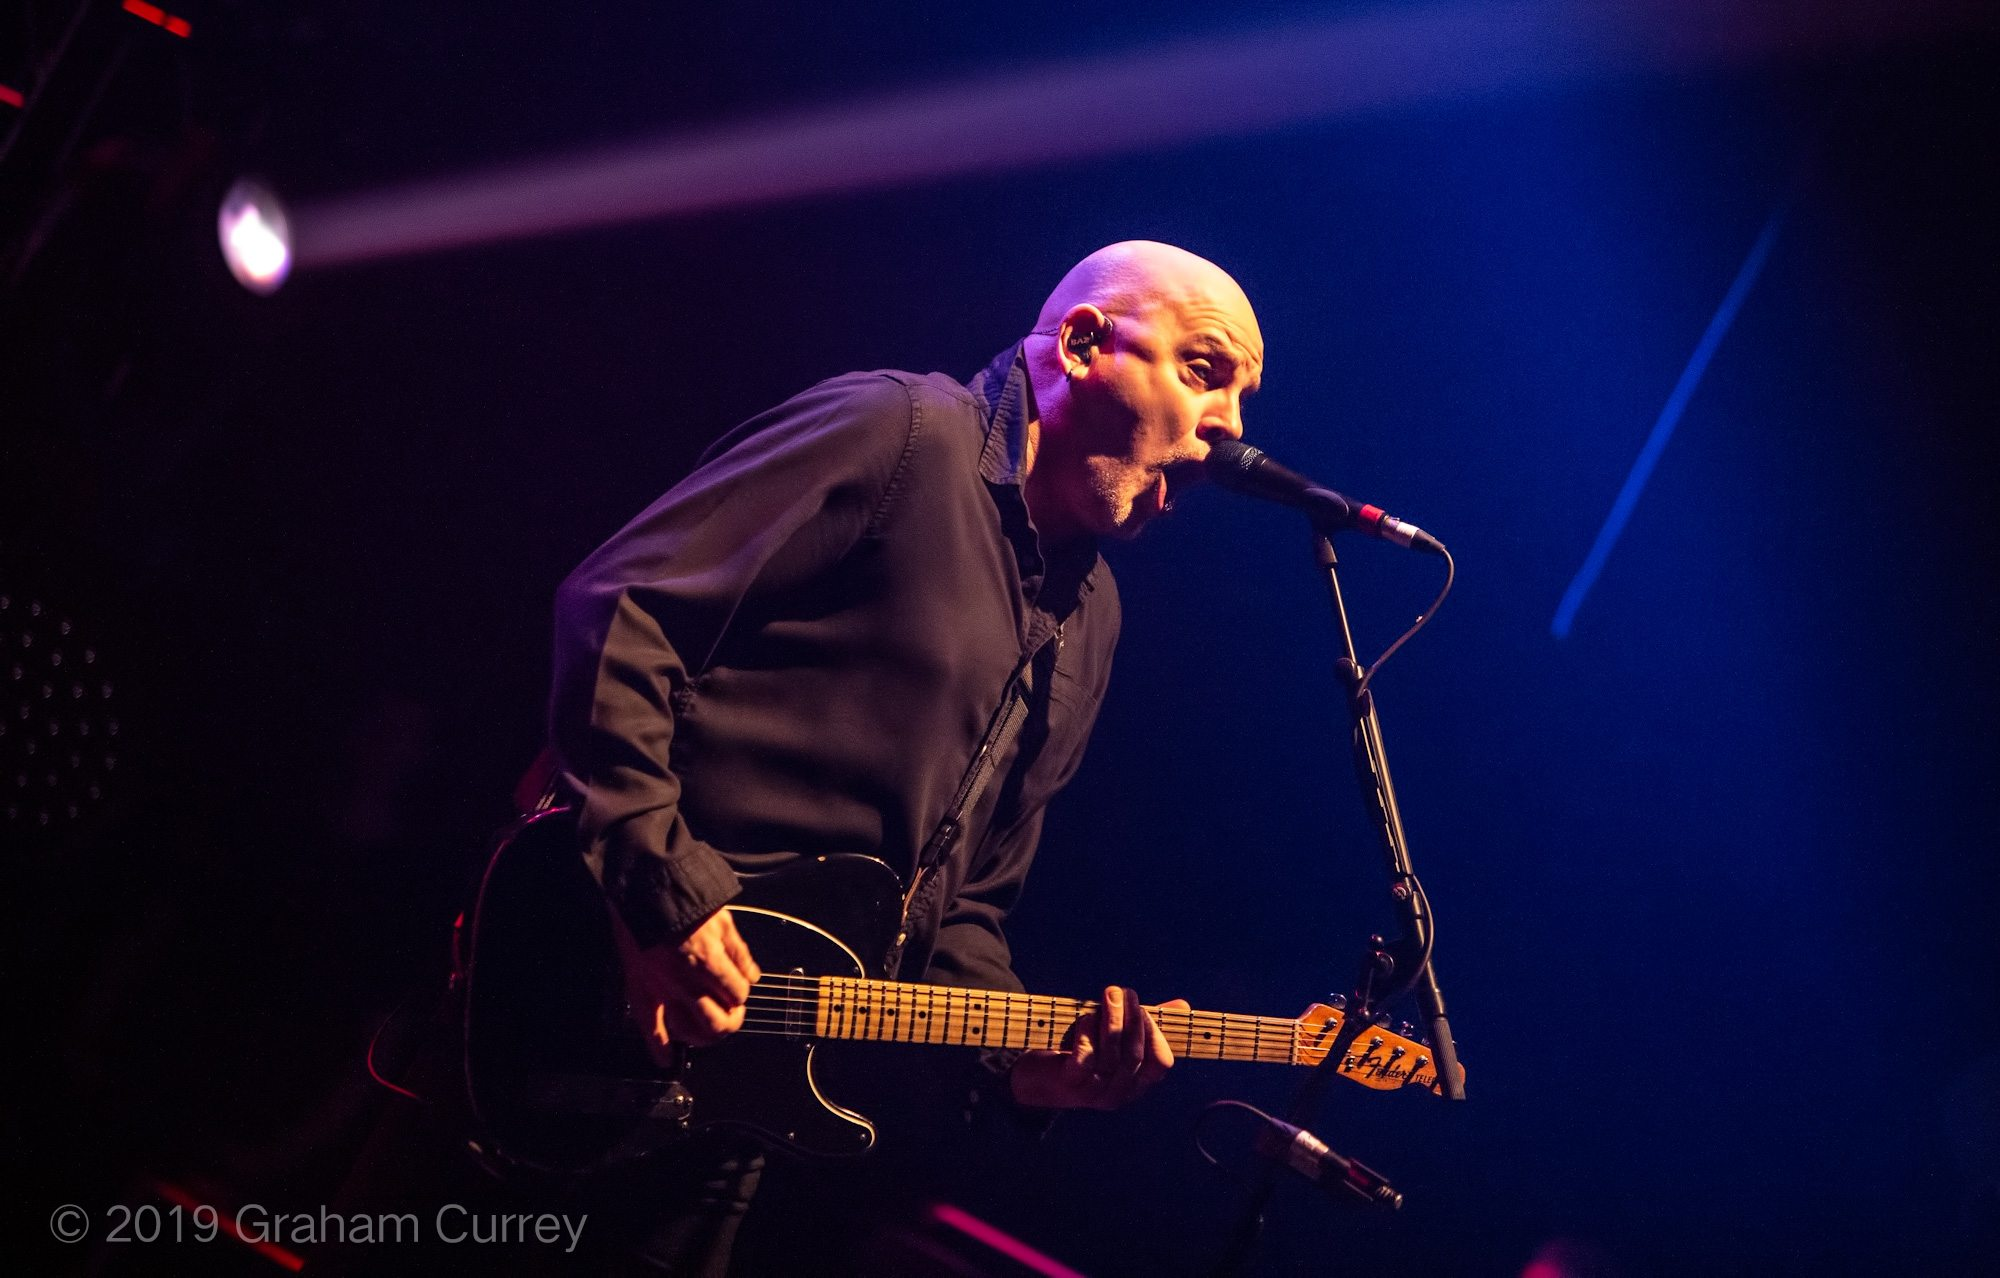 The Stranglers at the Manchester Apollo